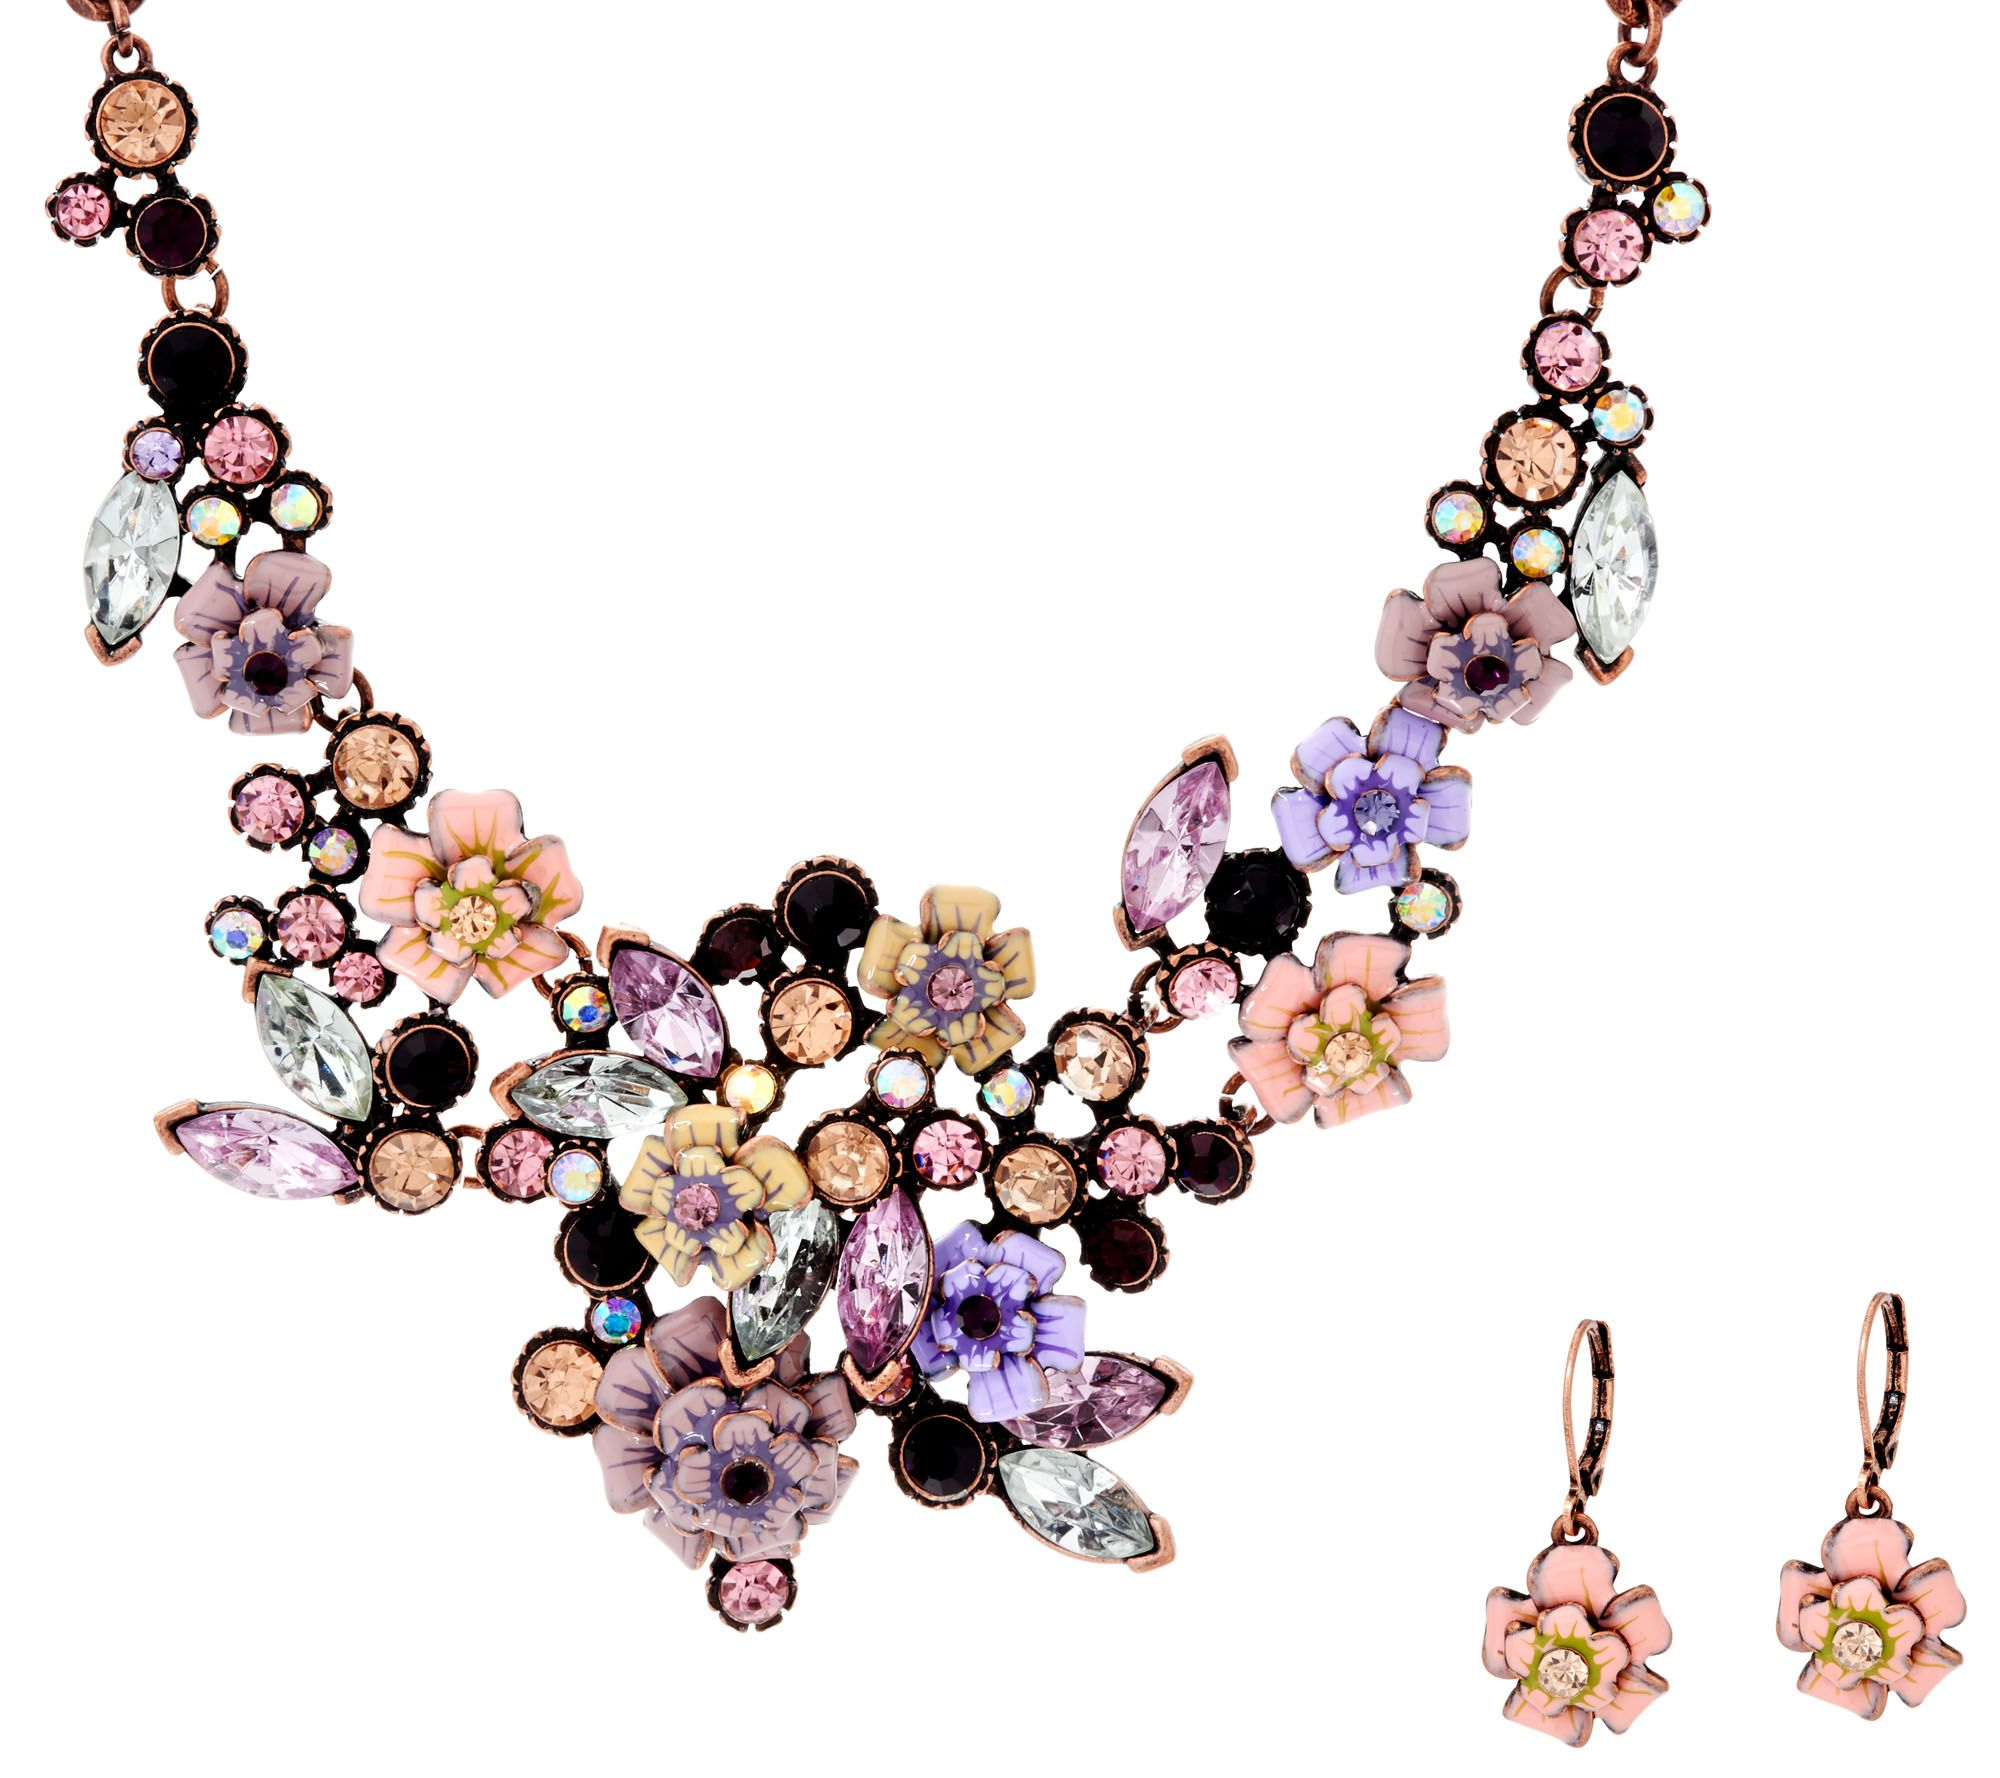 Joan rivers language of flowers rose necklace and earrings for Joan rivers jewelry necklaces